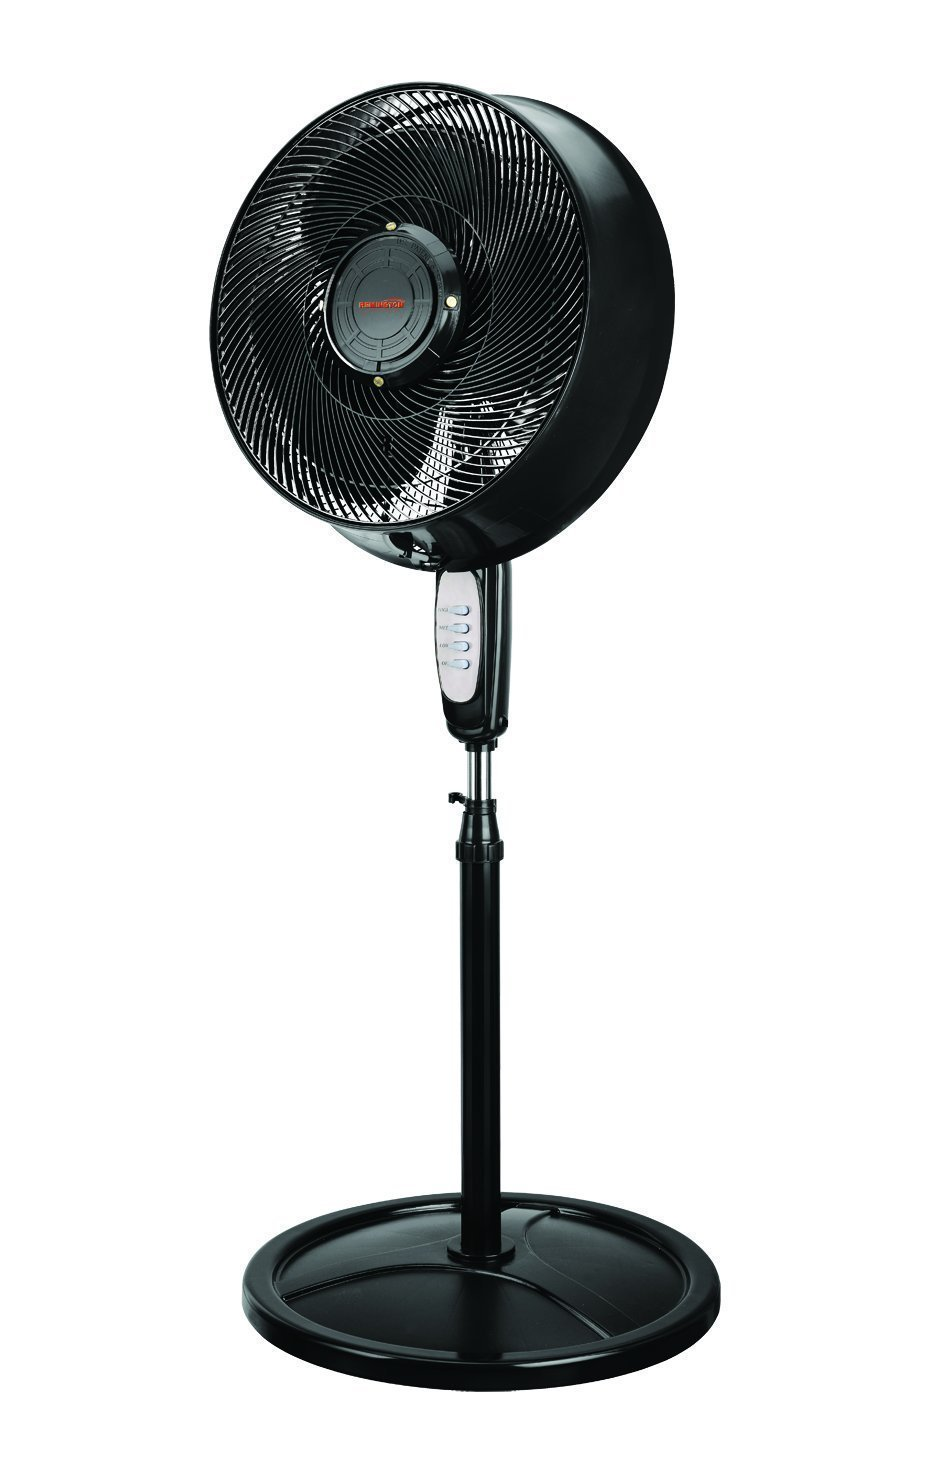 Remington 16'' Oscillating Outdoor Misting Fan with 4 Nozzles for Cooling Patios, Pool Sides, Gardens, Worksites and Decks